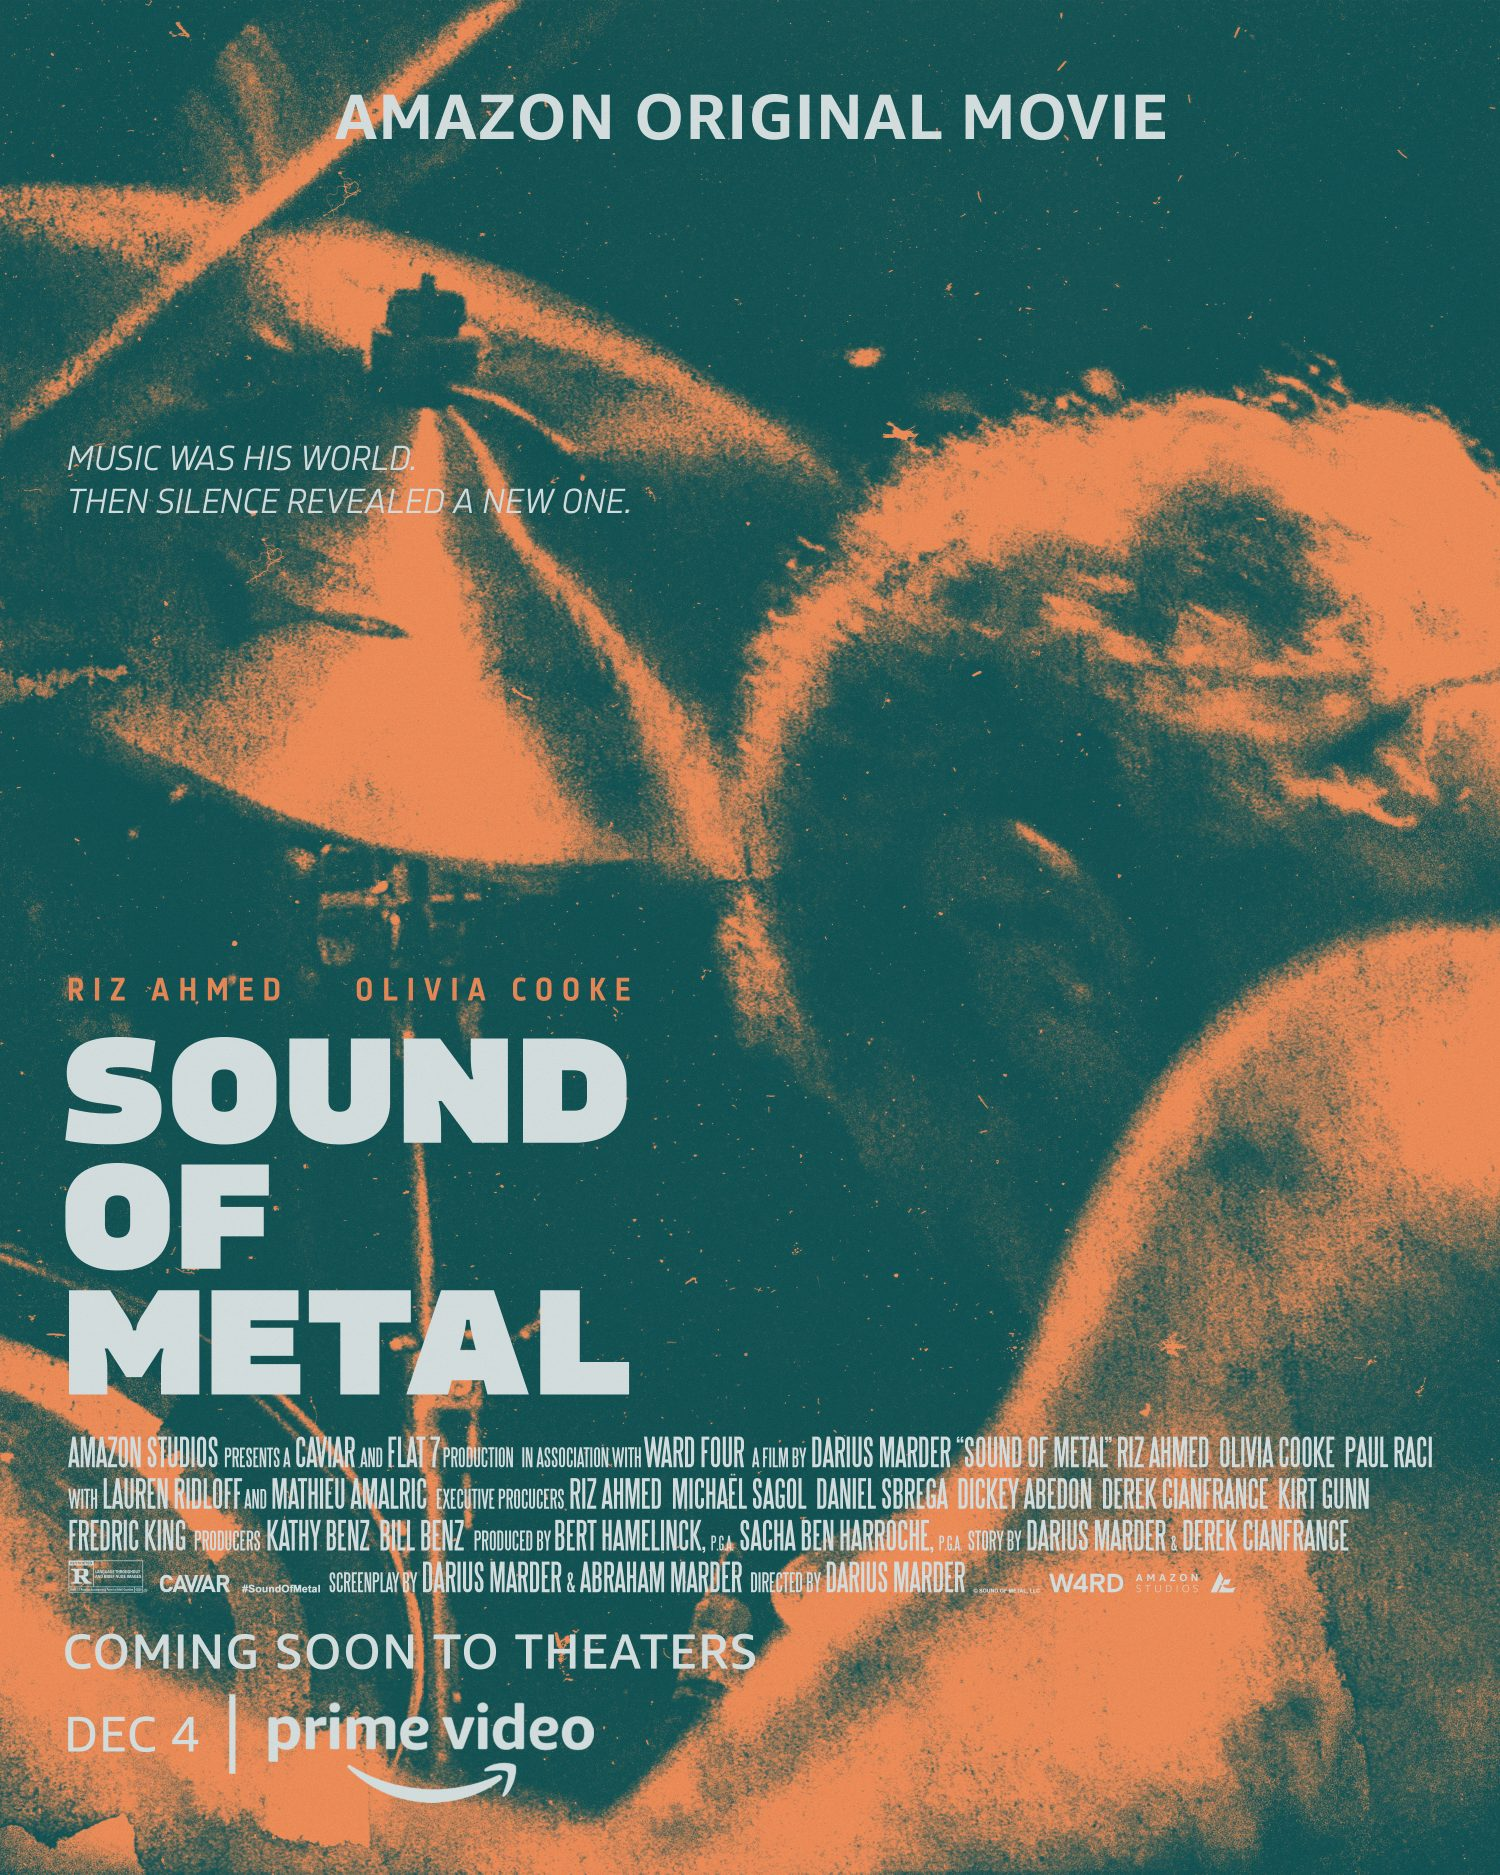 SOUND-OF-METAL-HIGH-RES-1500x1875.jpg